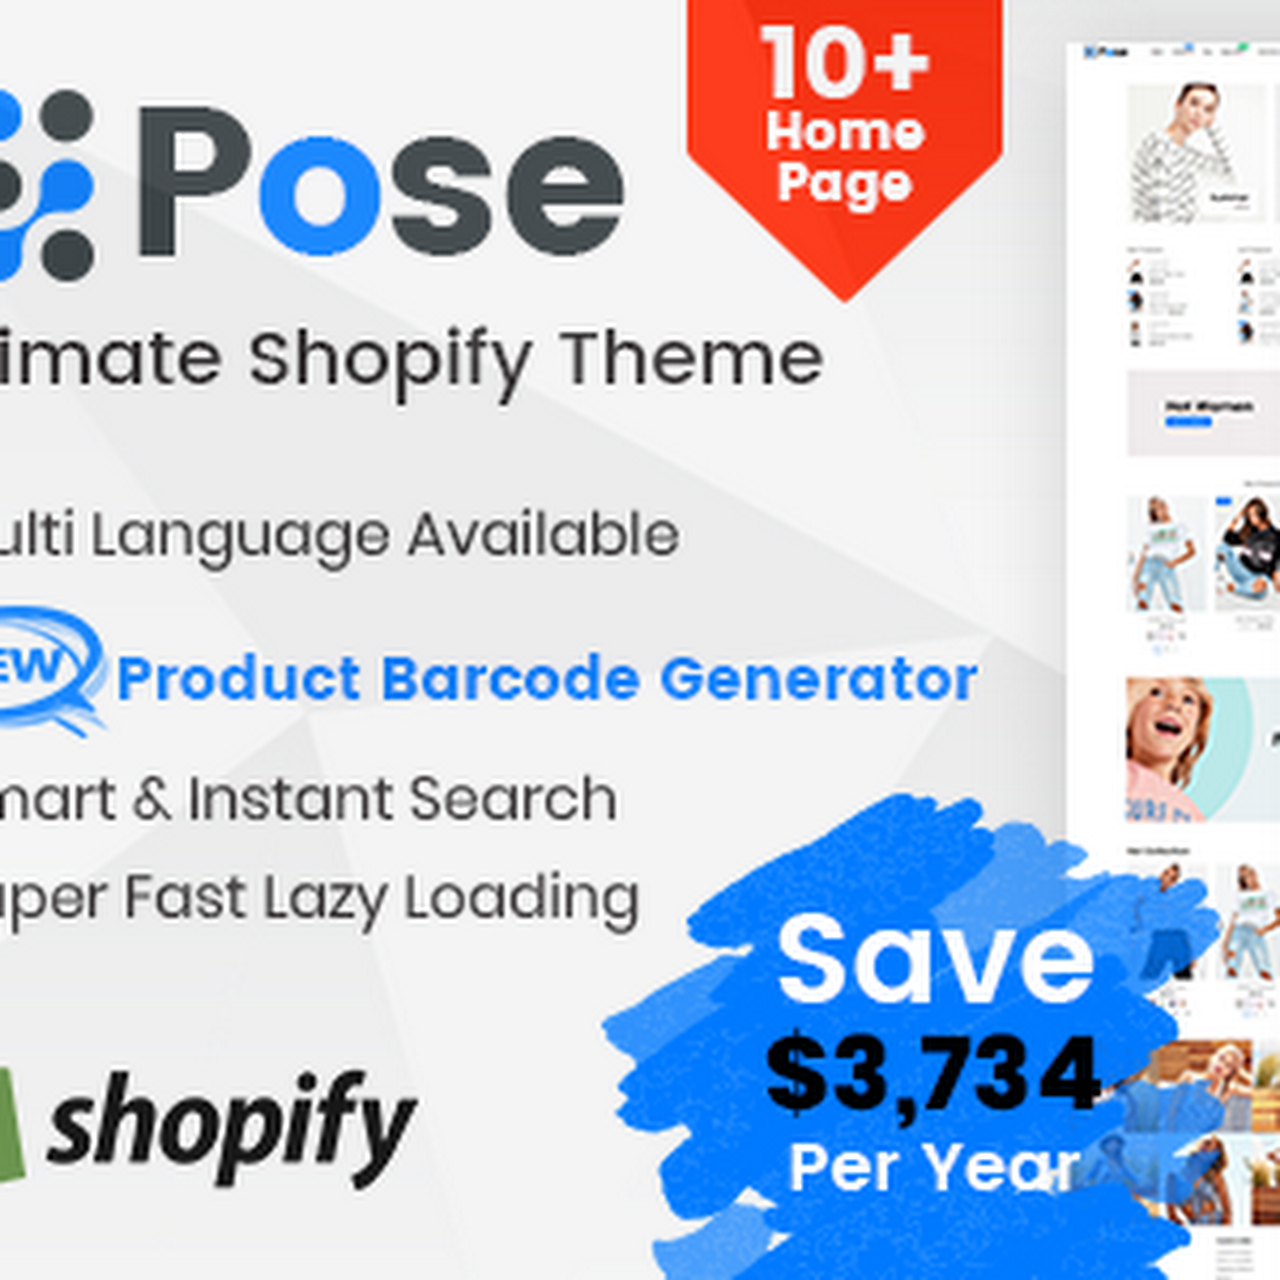 ThemeTidy (shopify themes, psd & html templates) - Software